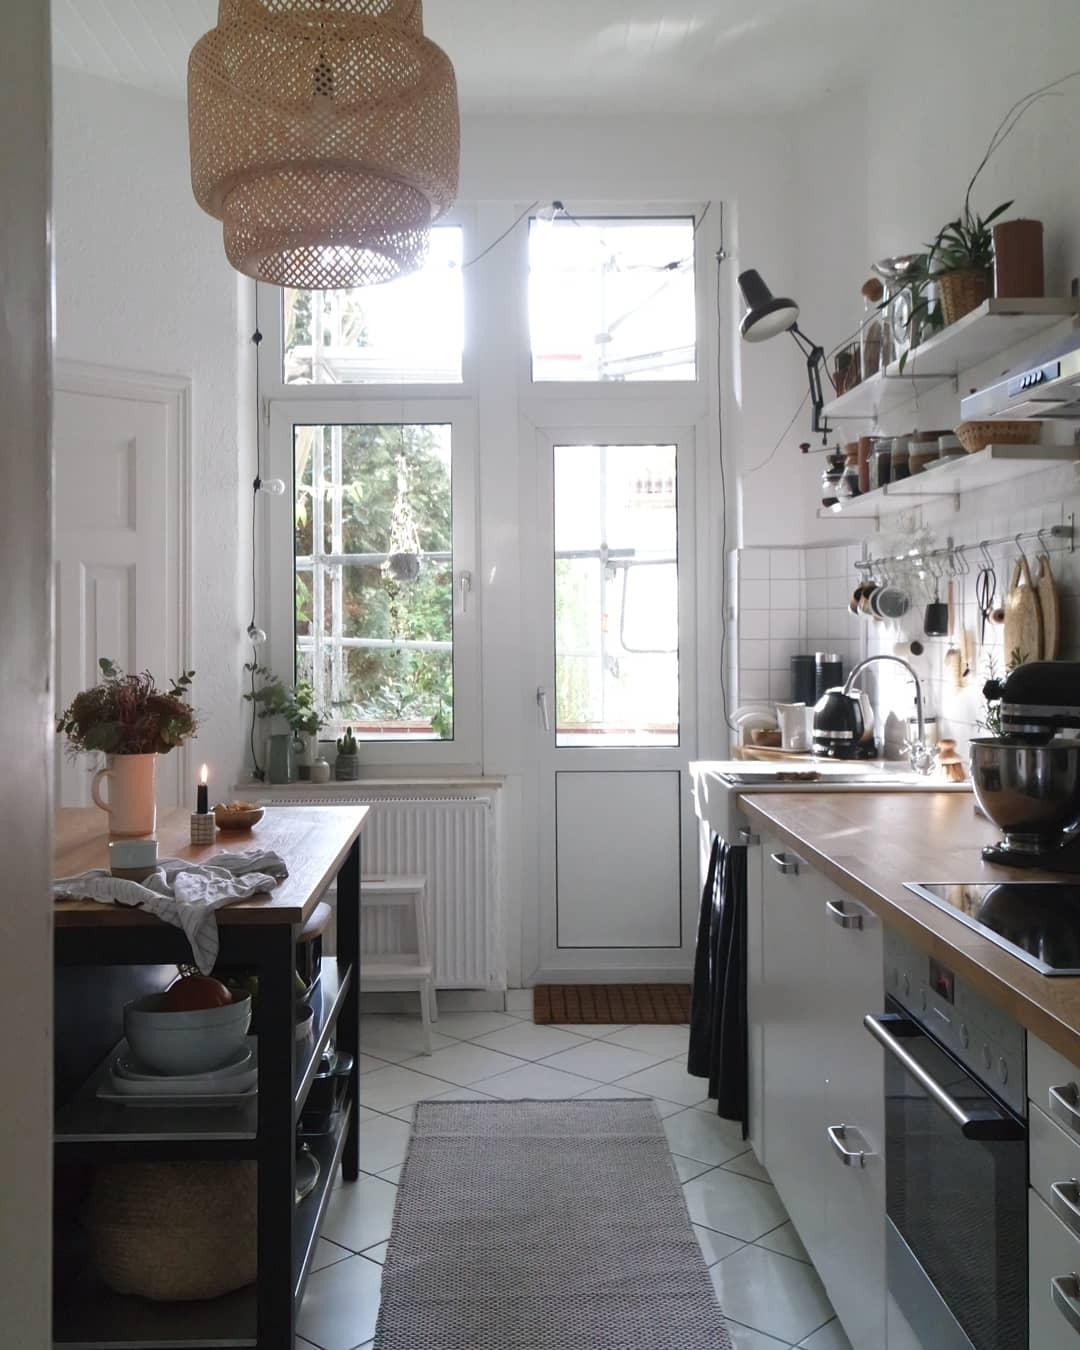 Kitchenview  favouriteview altbau altbauliebe kueche  2c565bd7 e774 4acc 8003 cae17fe093b0